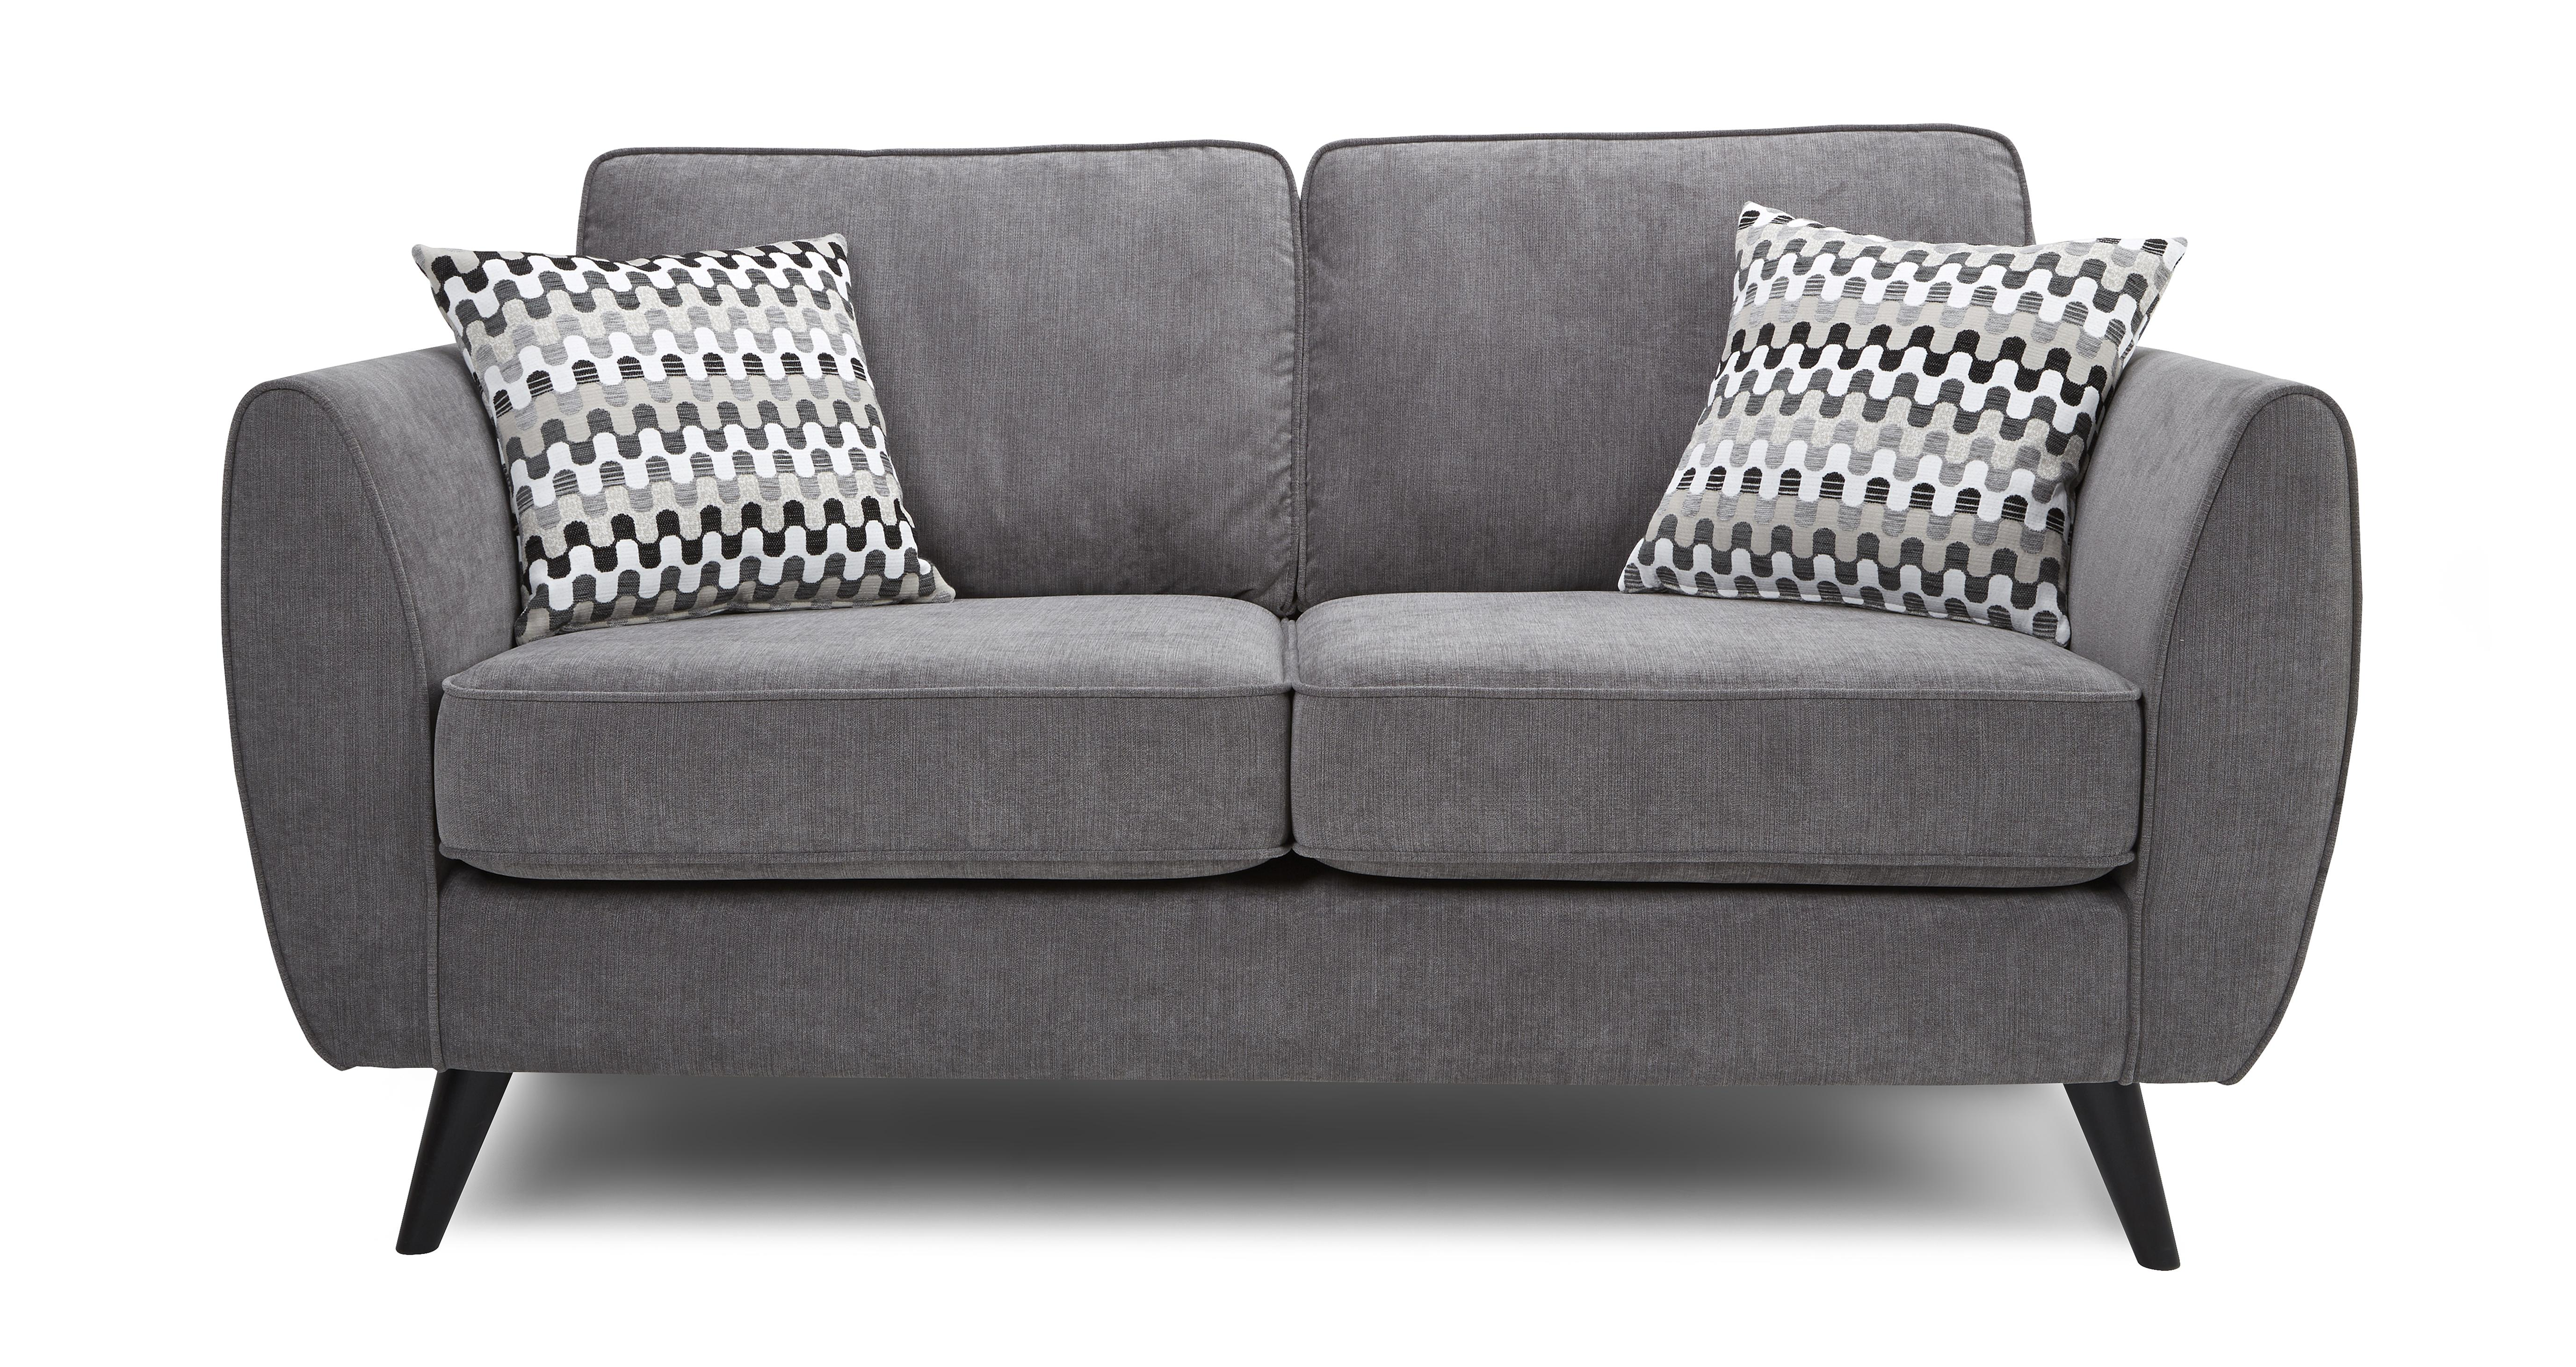 Spend quality time with your better half on a two seater sofa ...